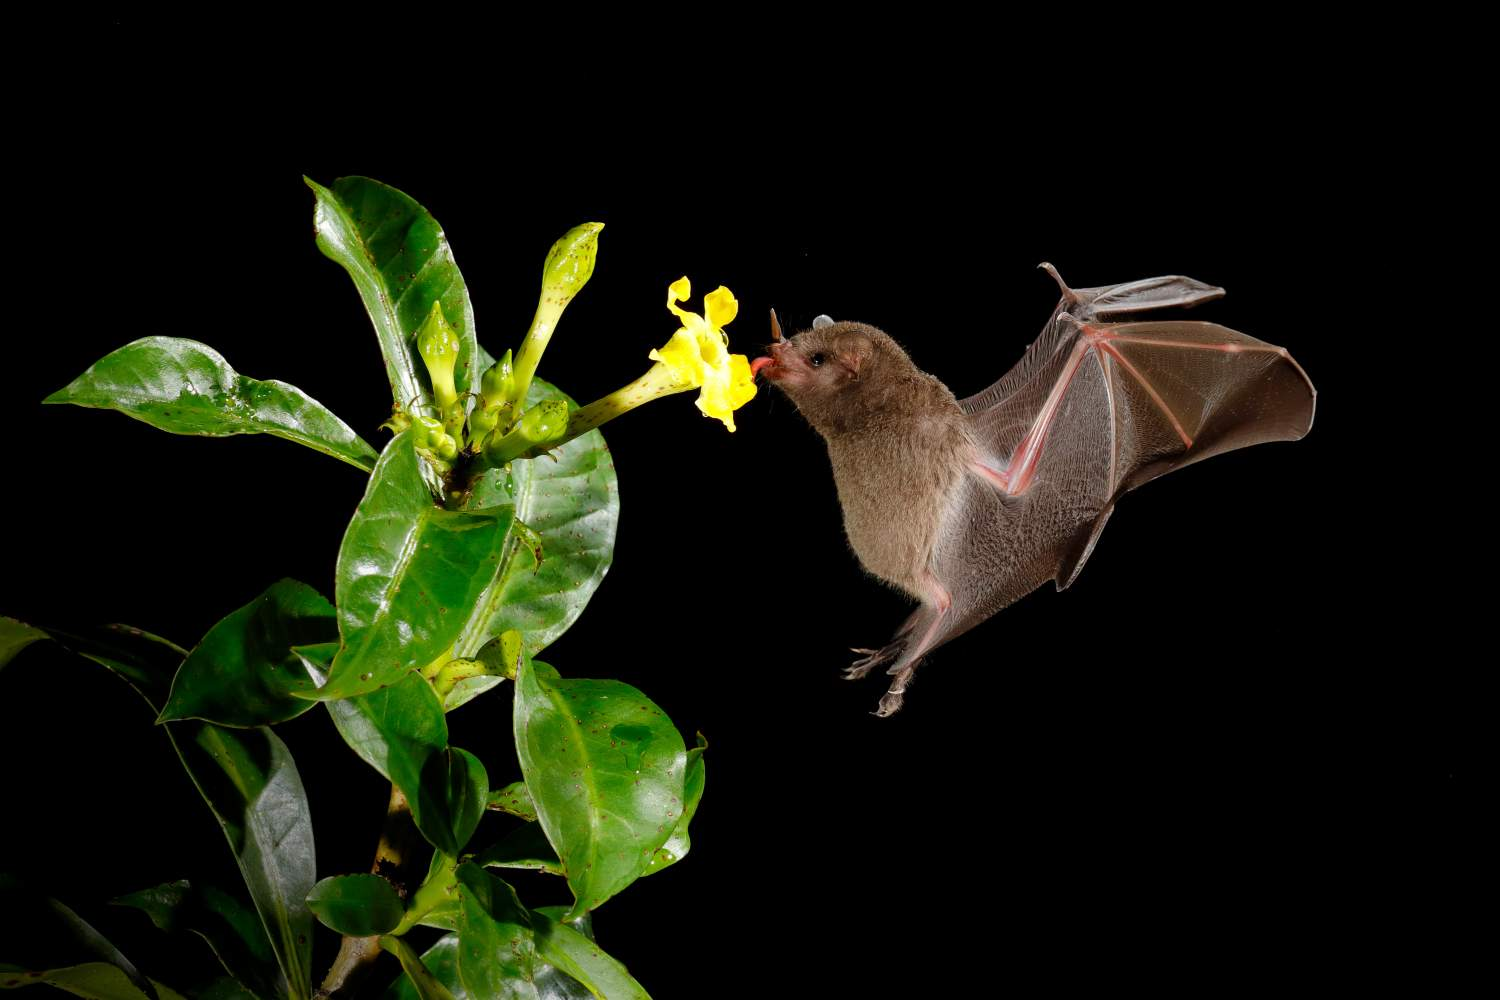 Pallas's long-tongued bat eating from flower in the night